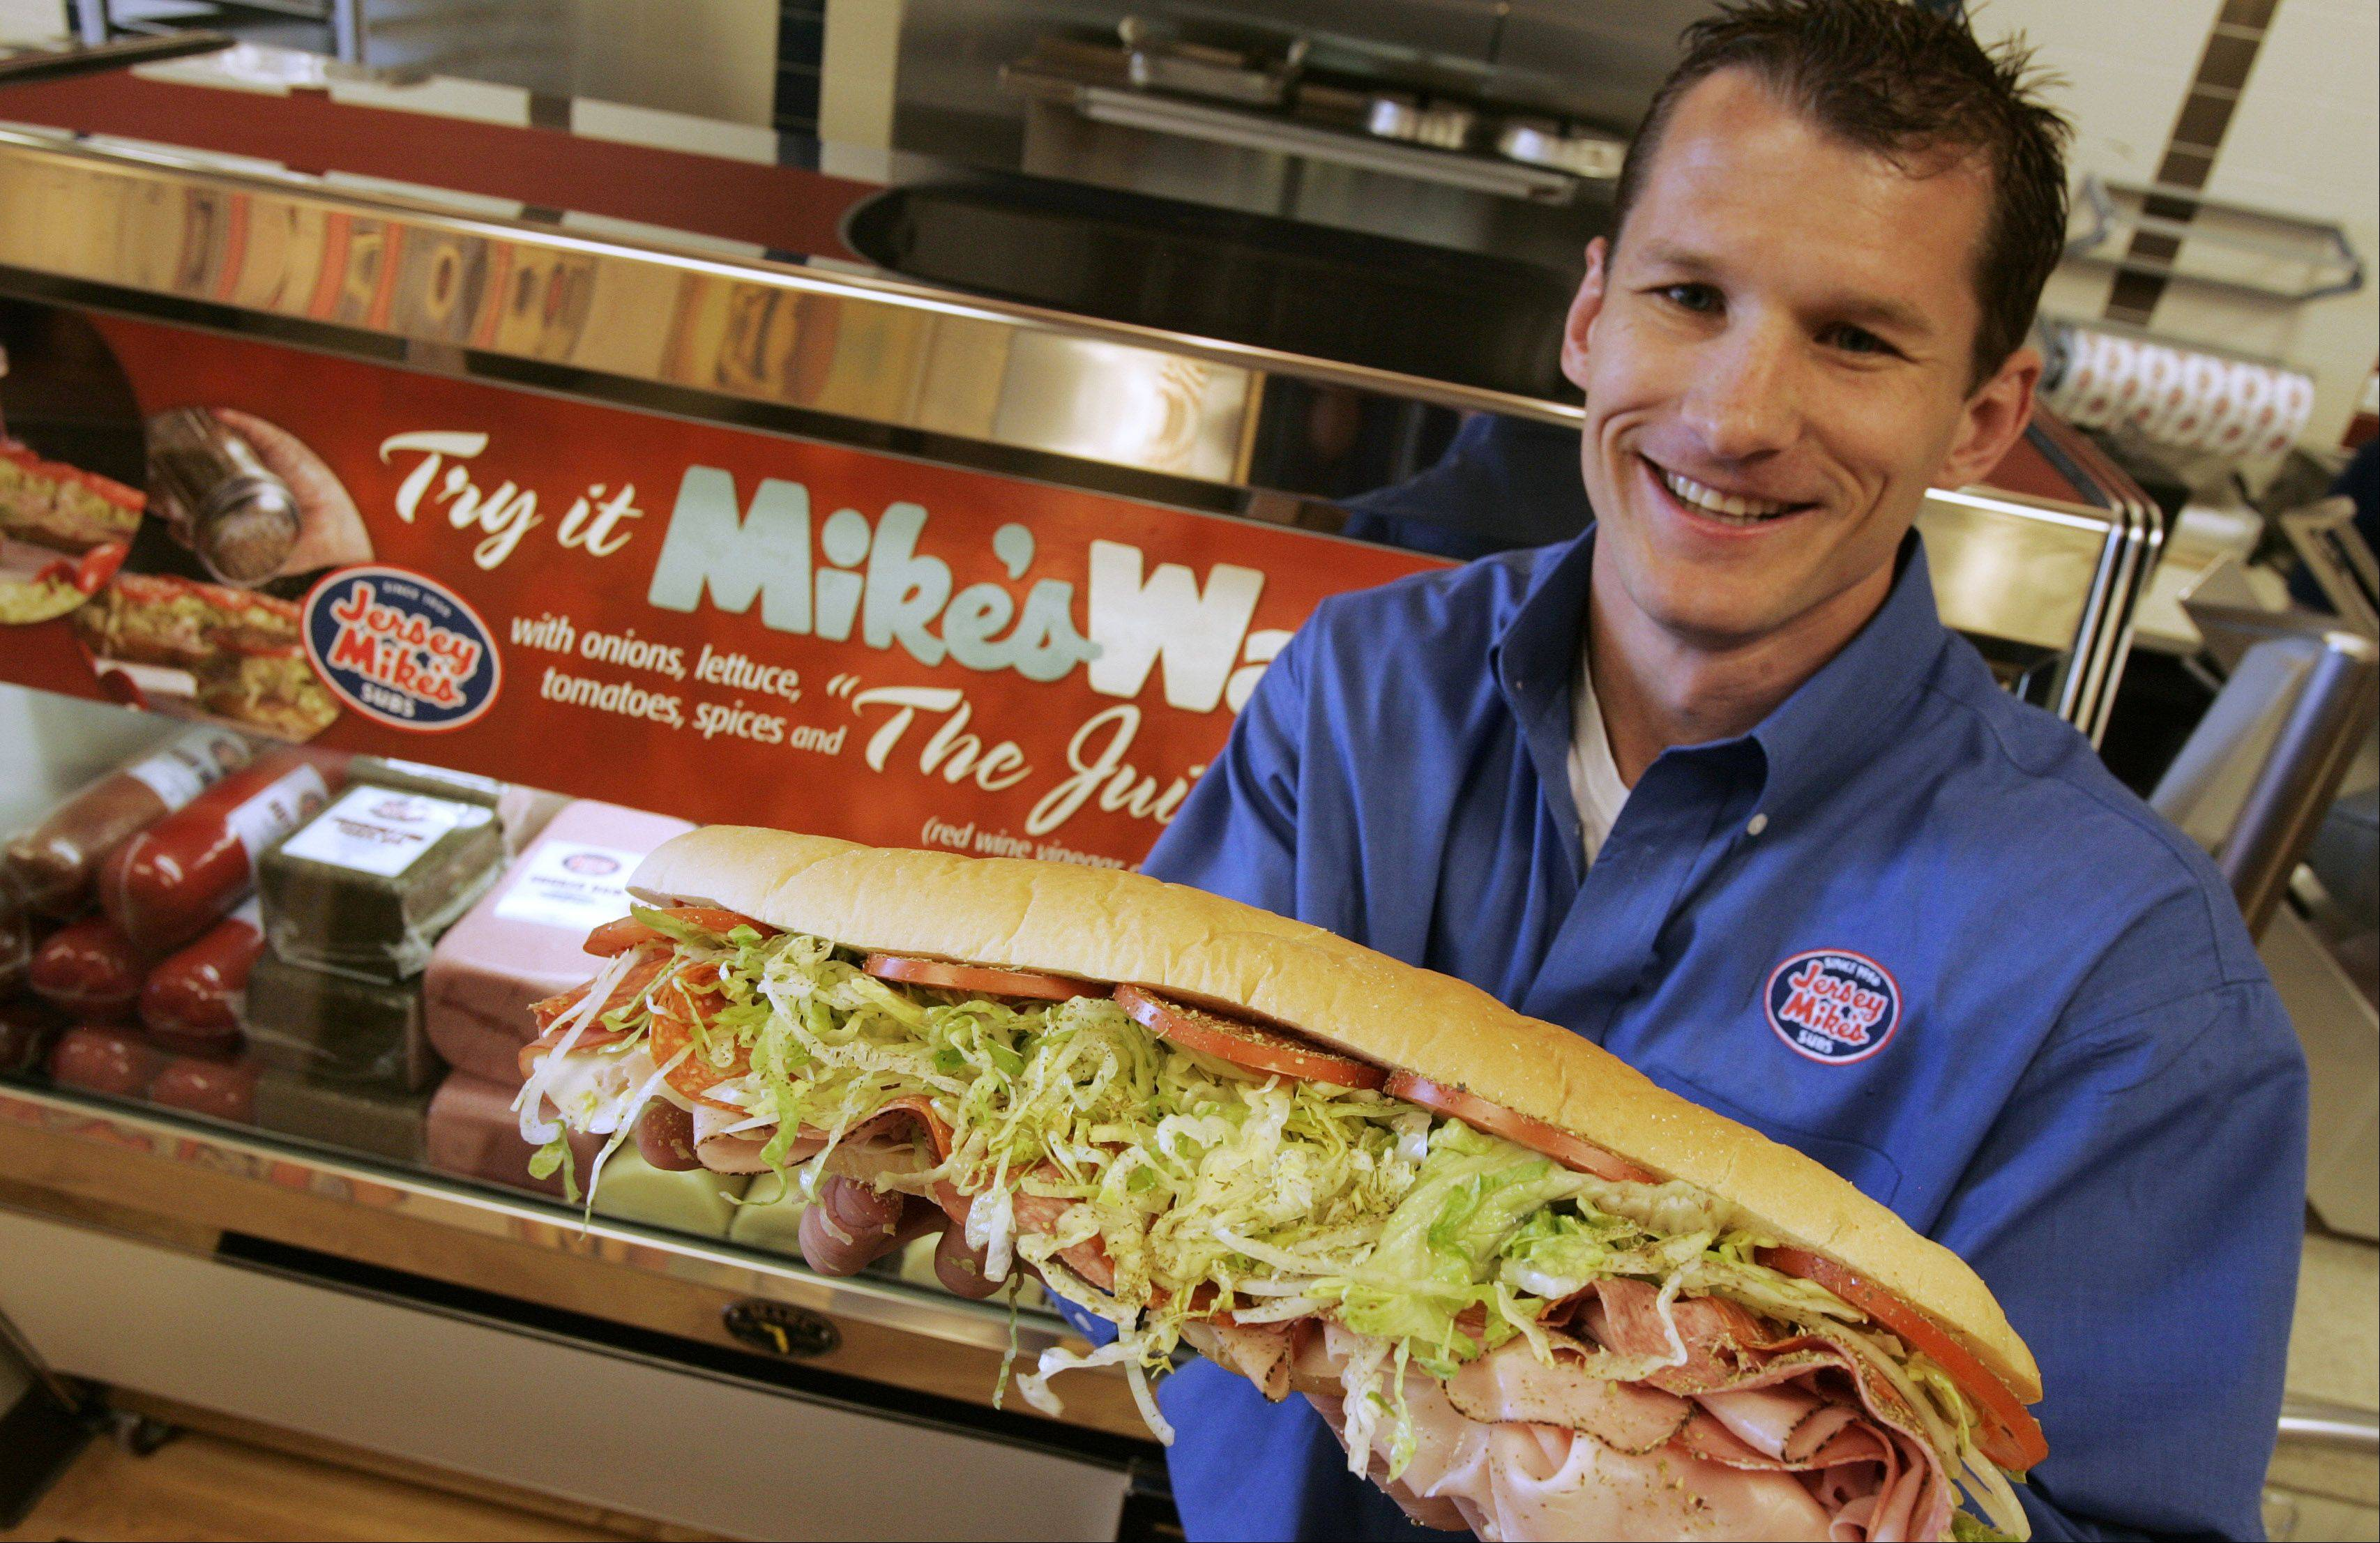 Jersey Mike's welcomes fundraisers